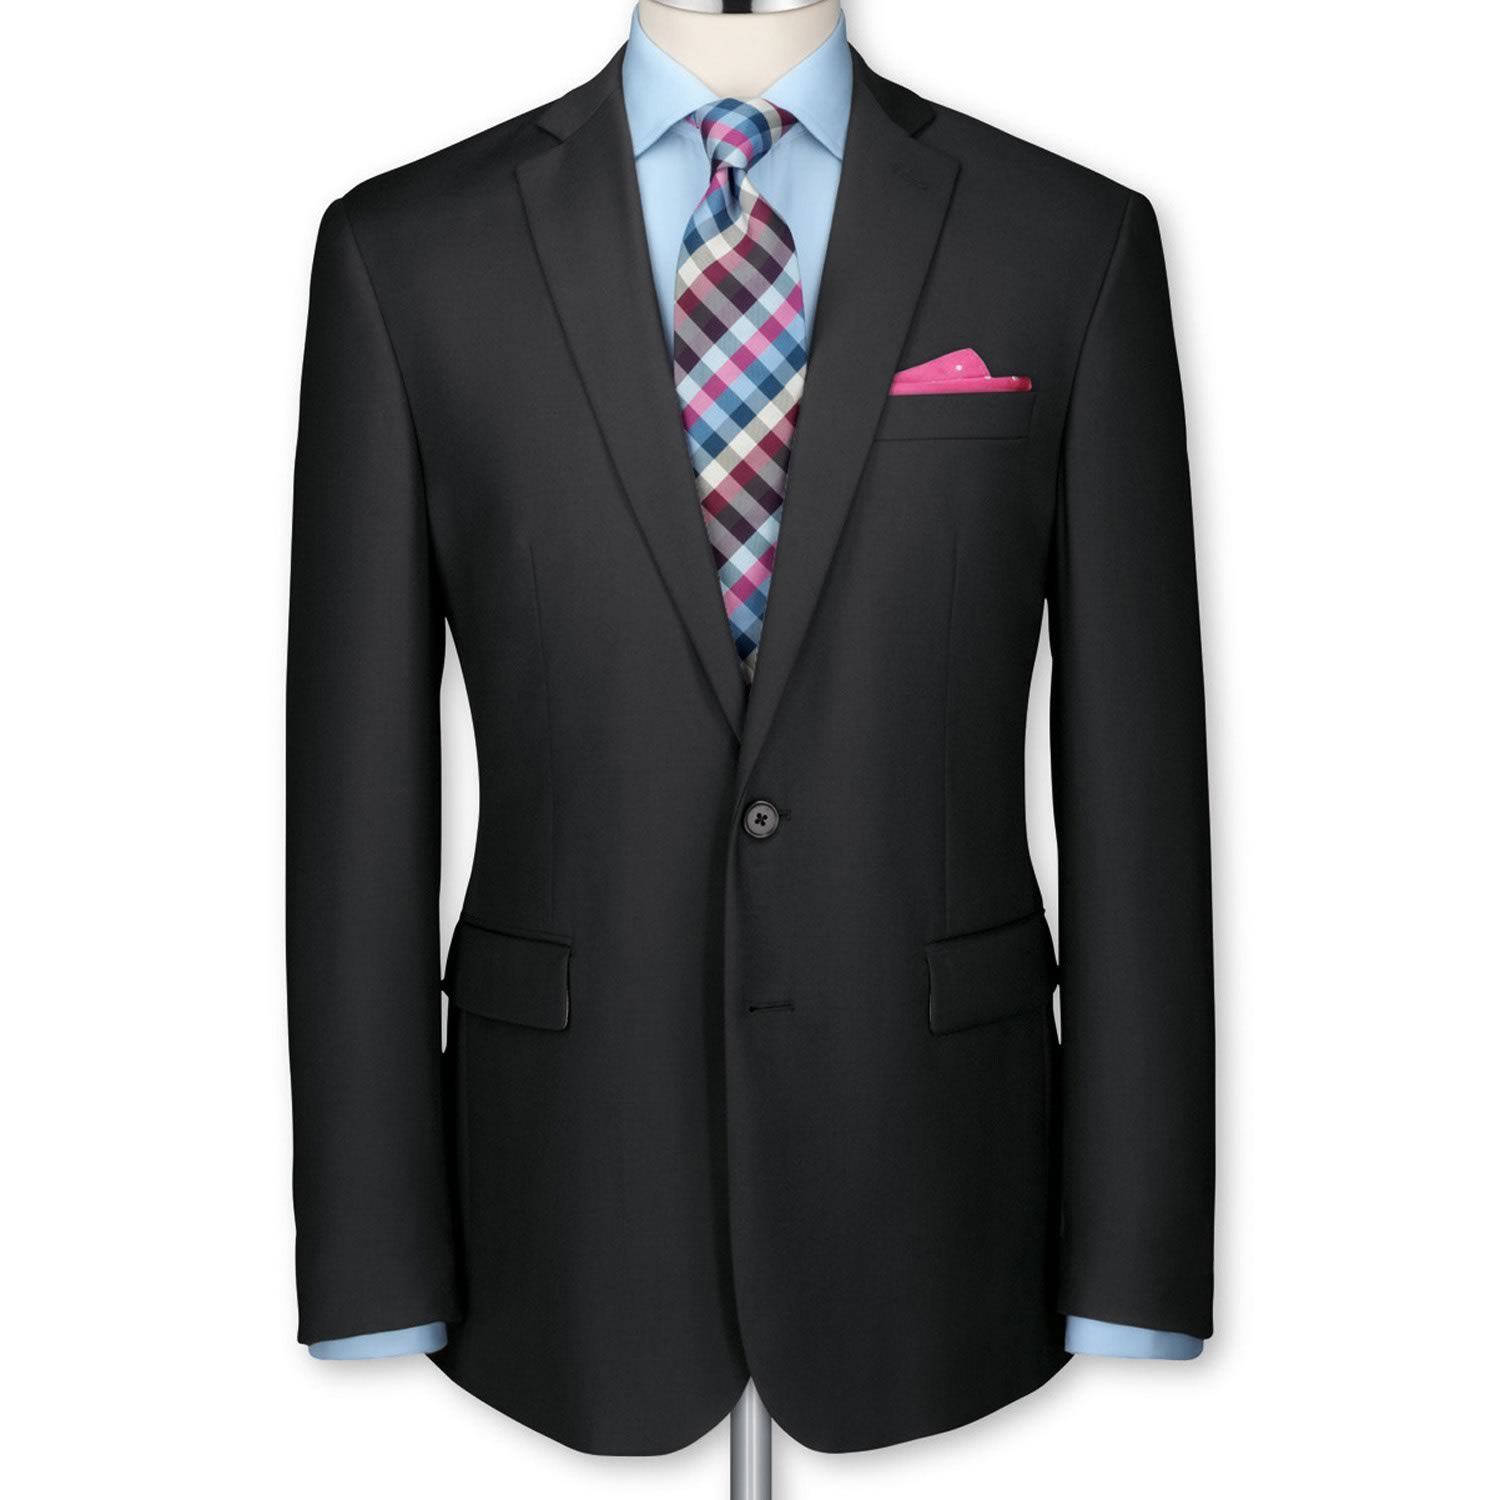 Black twill tailored fit 2 button suit | Men's business ...